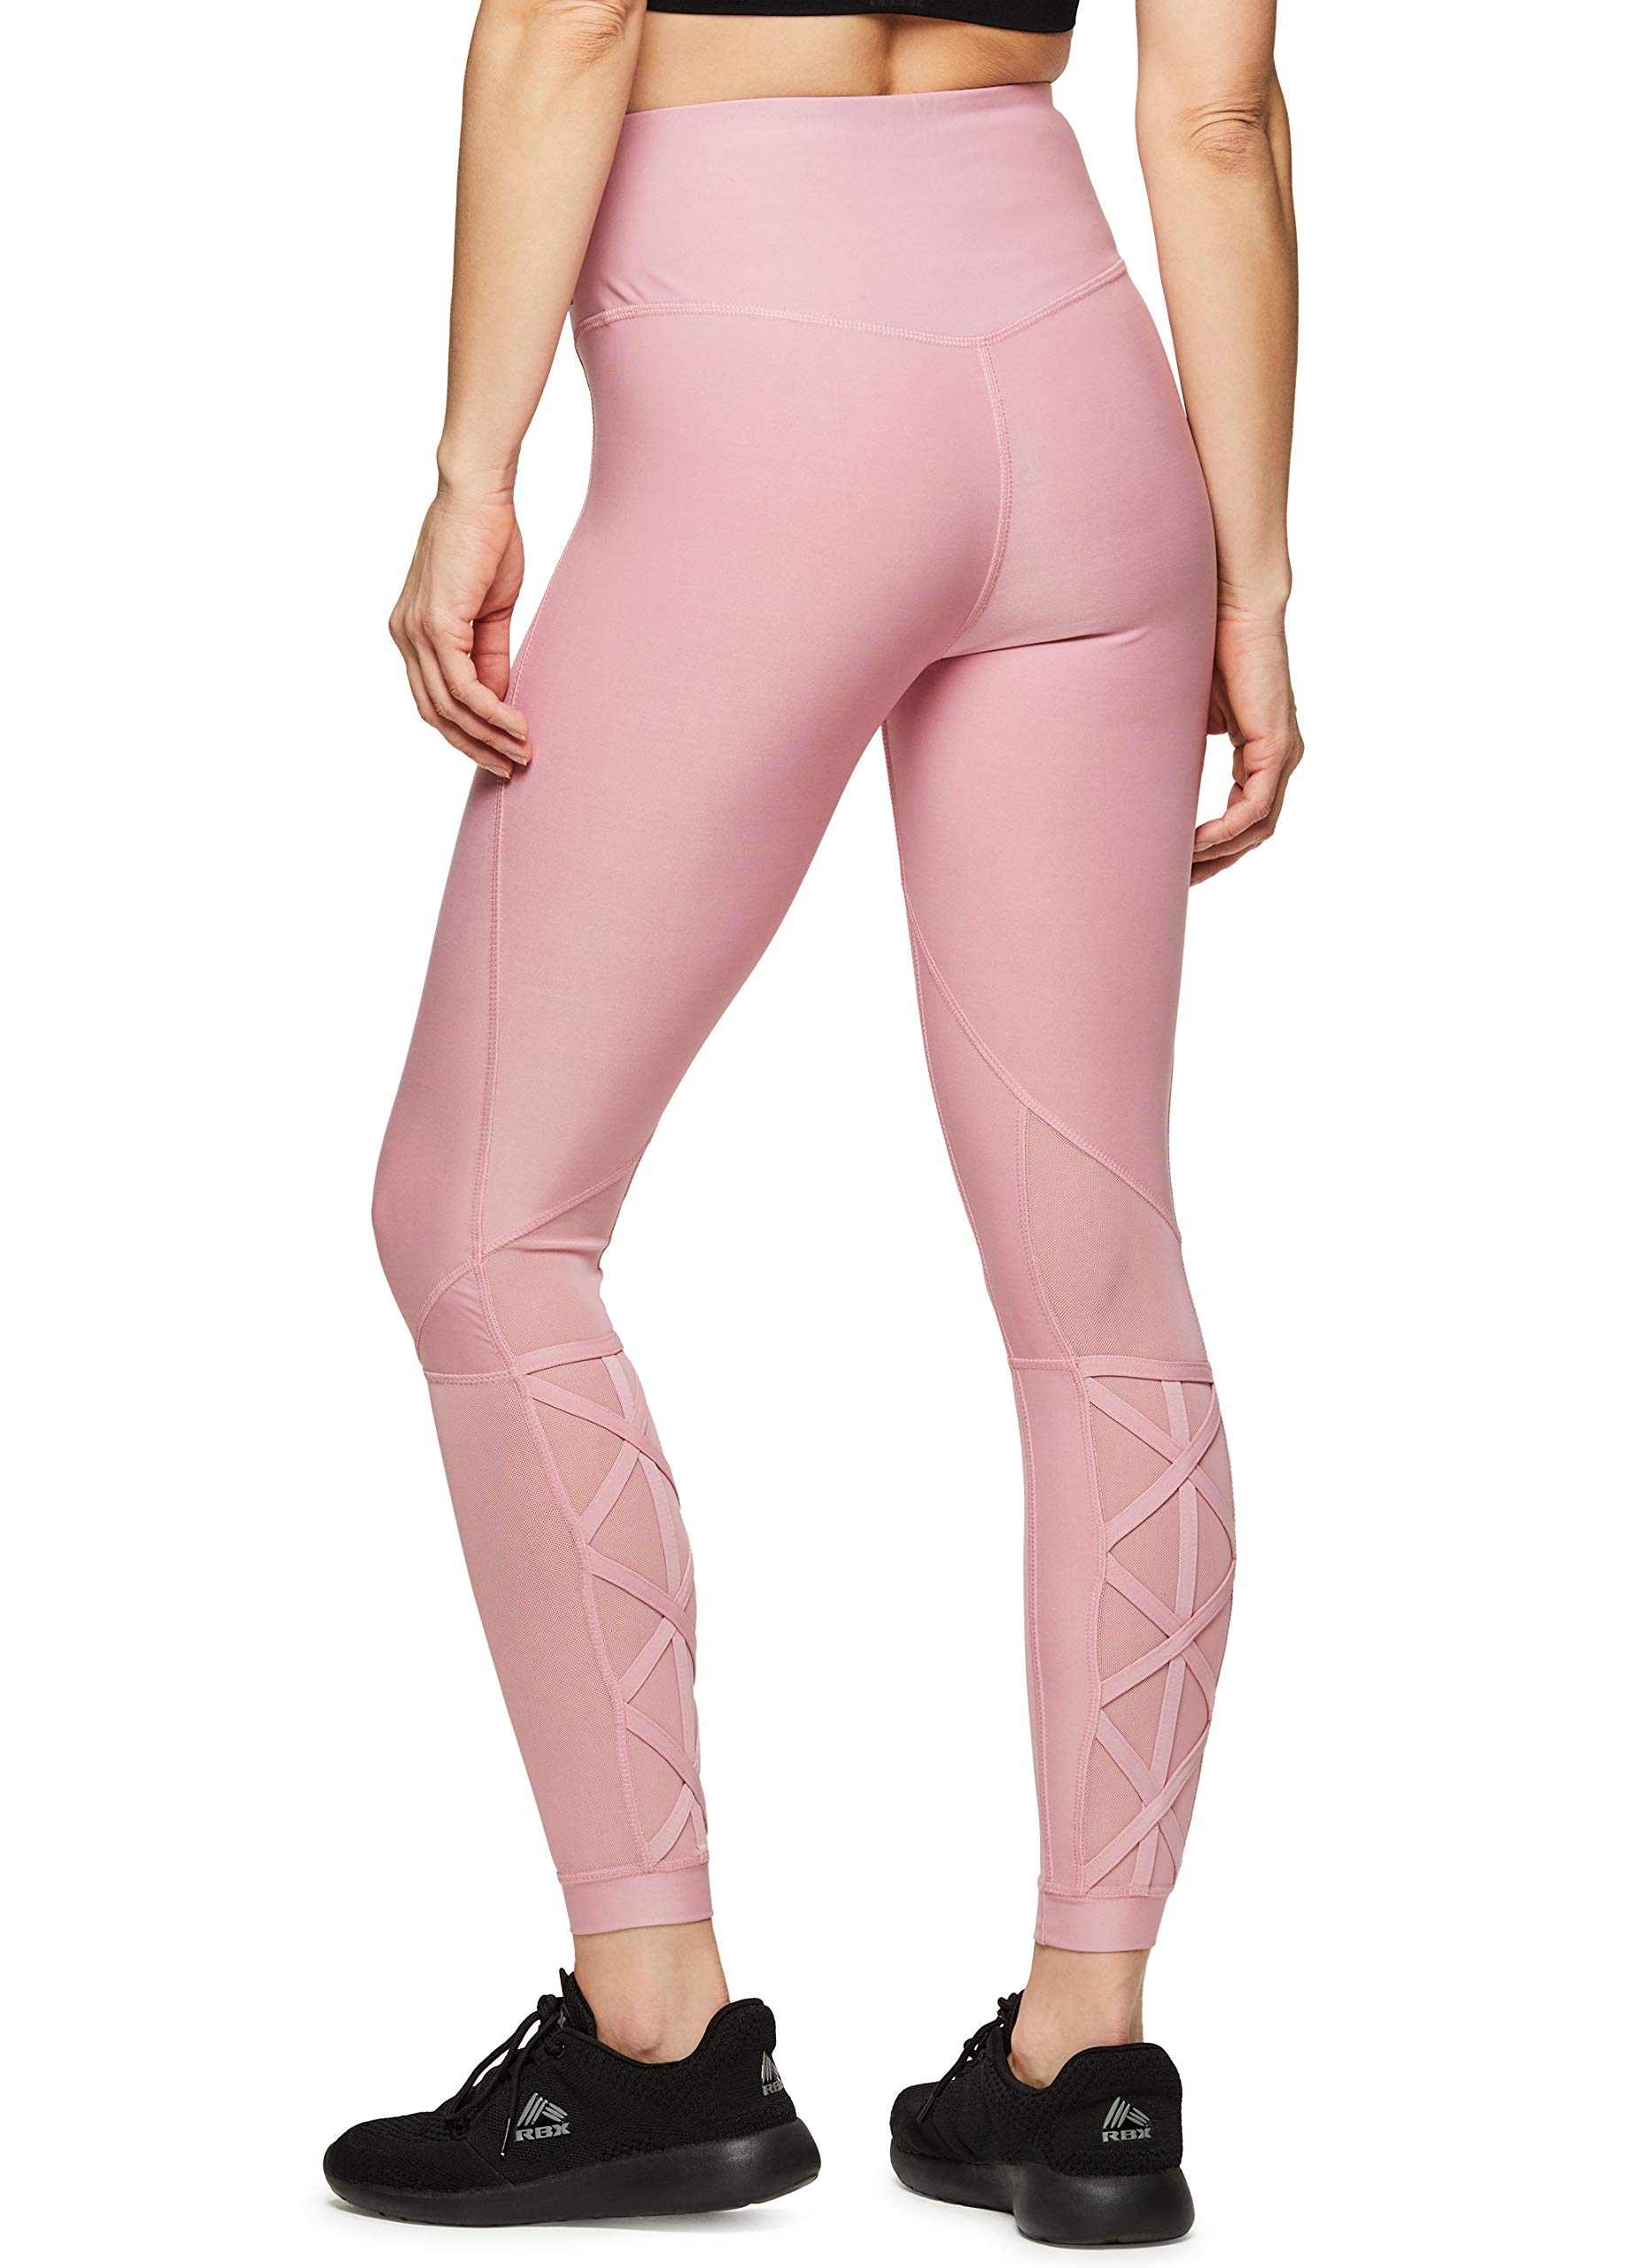 689359f914 RBX Active Women's Workout Gym Yoga Leggings Cage19 Pink L